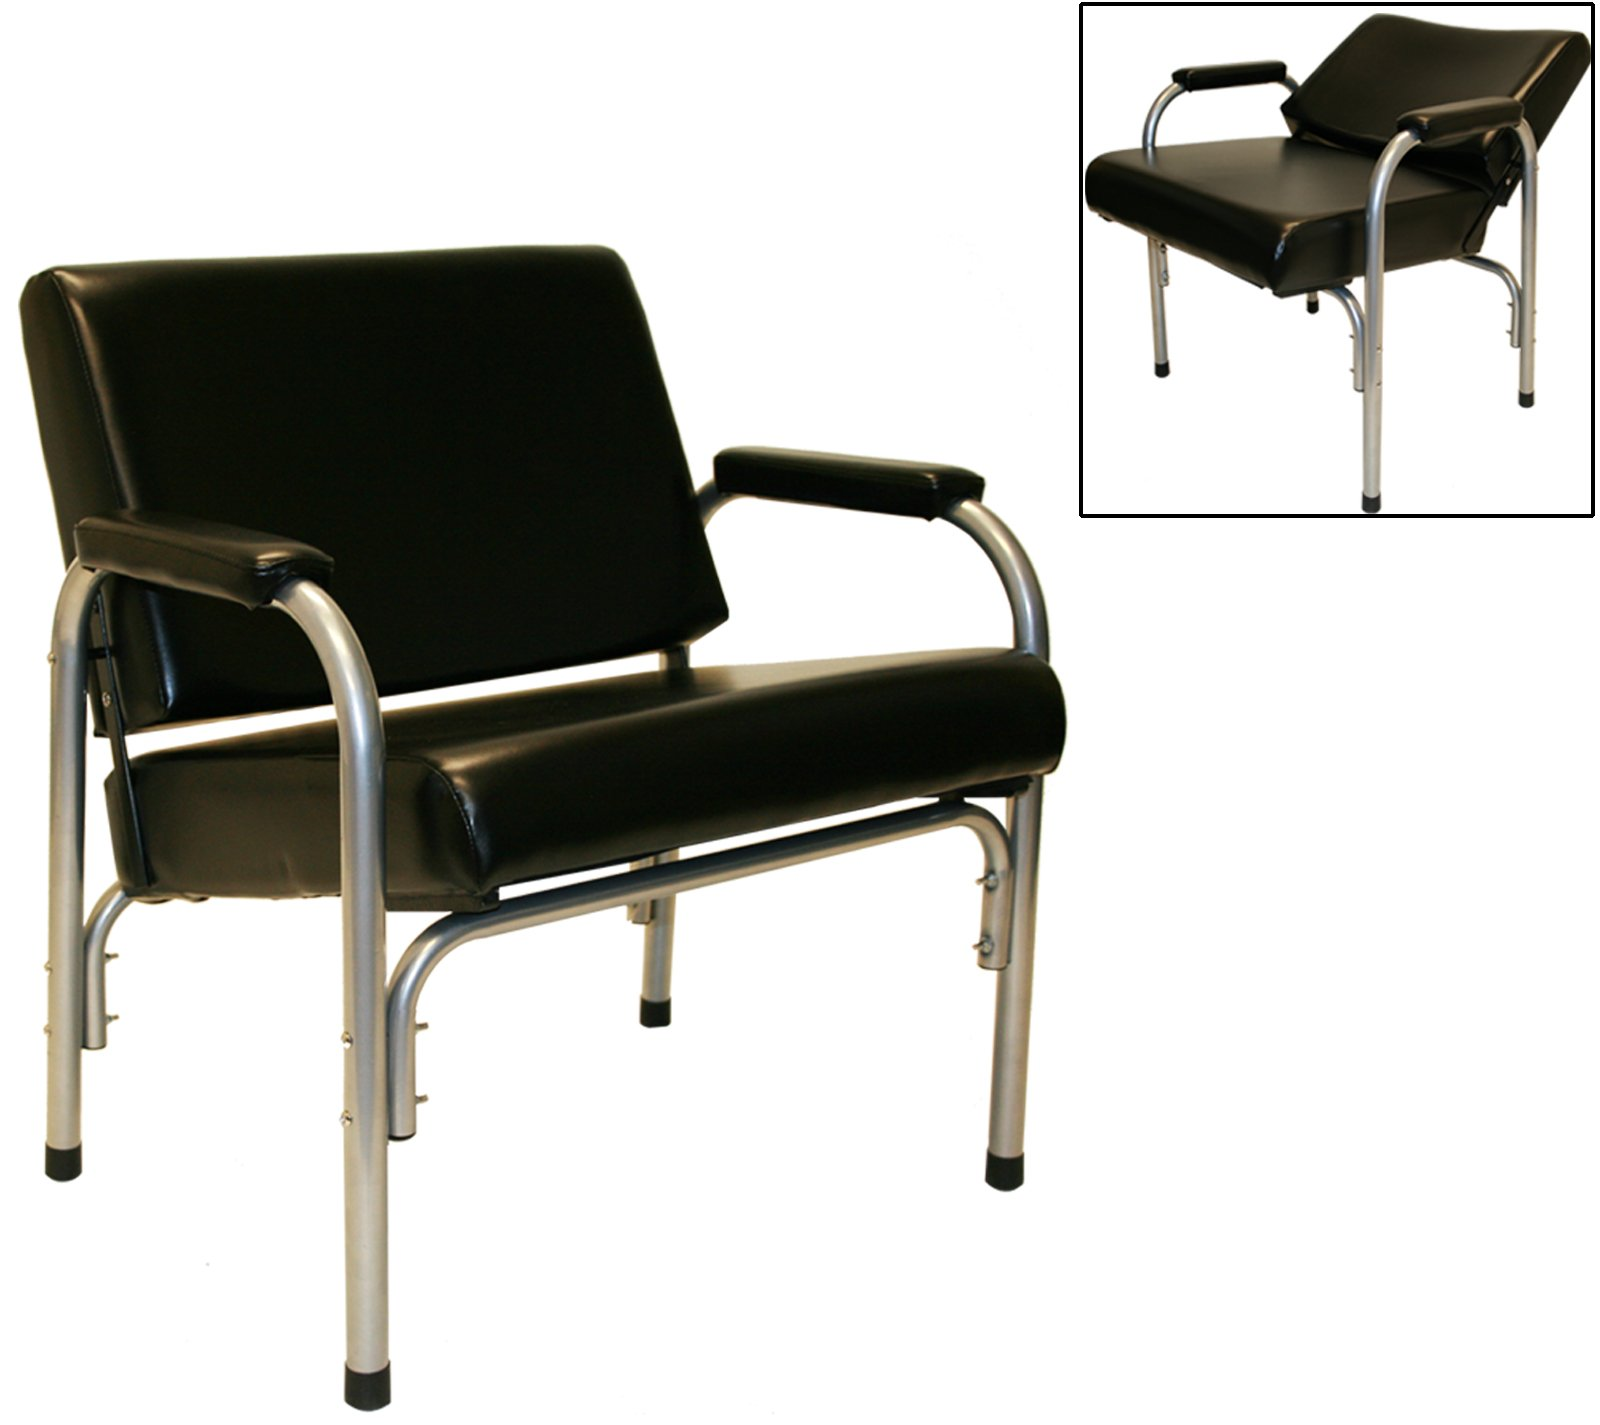 LCL Beauty LCL Plus Line Heavy Duty Extra Large Steel Reinforced Automatic Recline Shampoo Chair